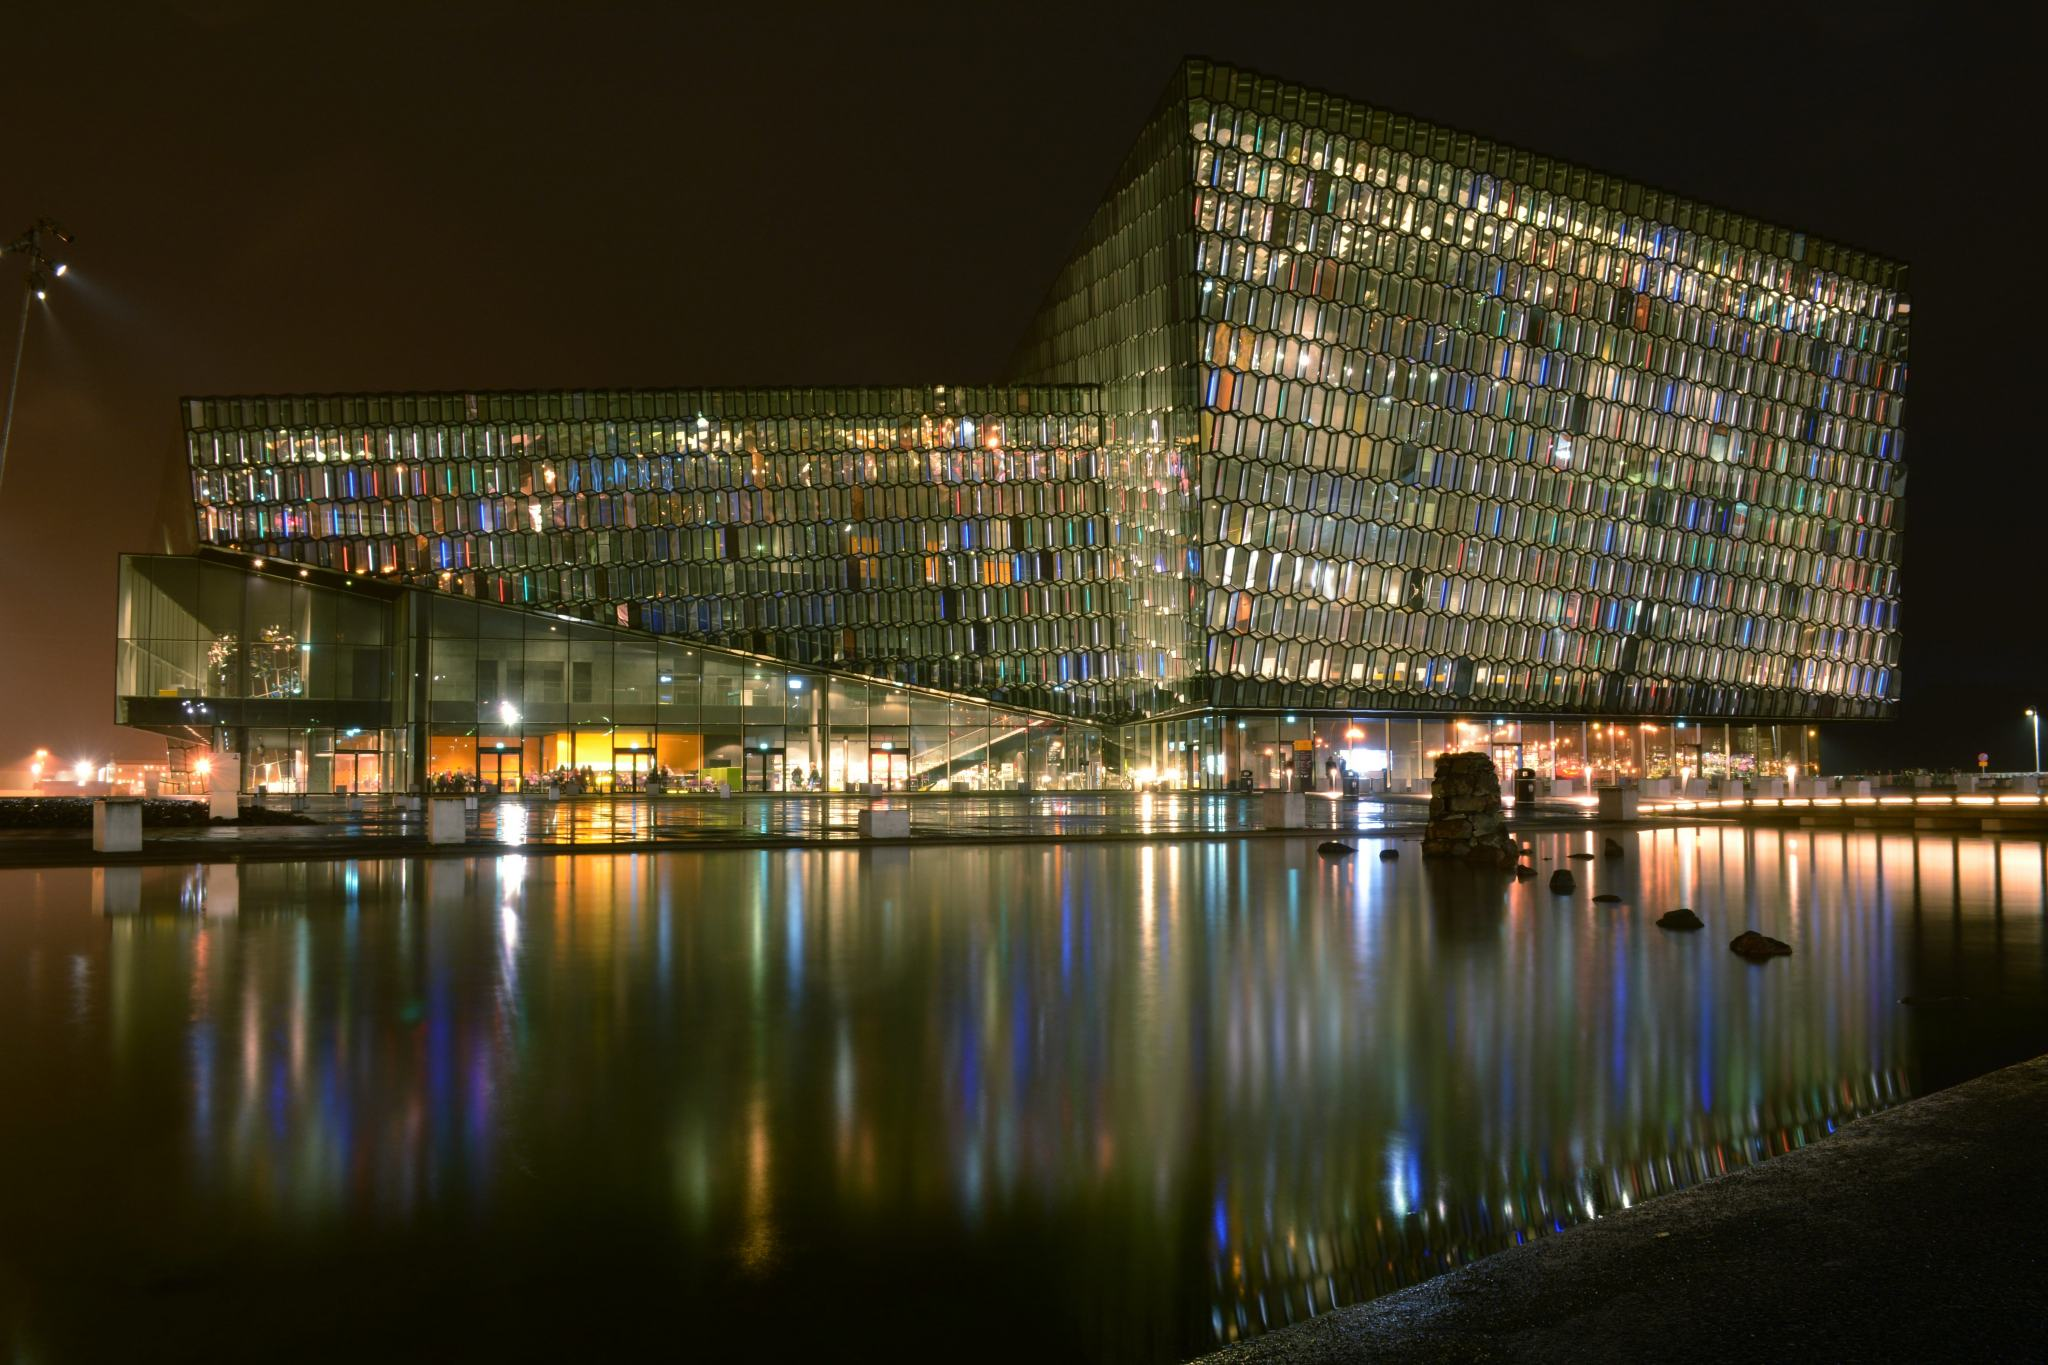 Iceland Honeymoon Harpa Concert Hall at night